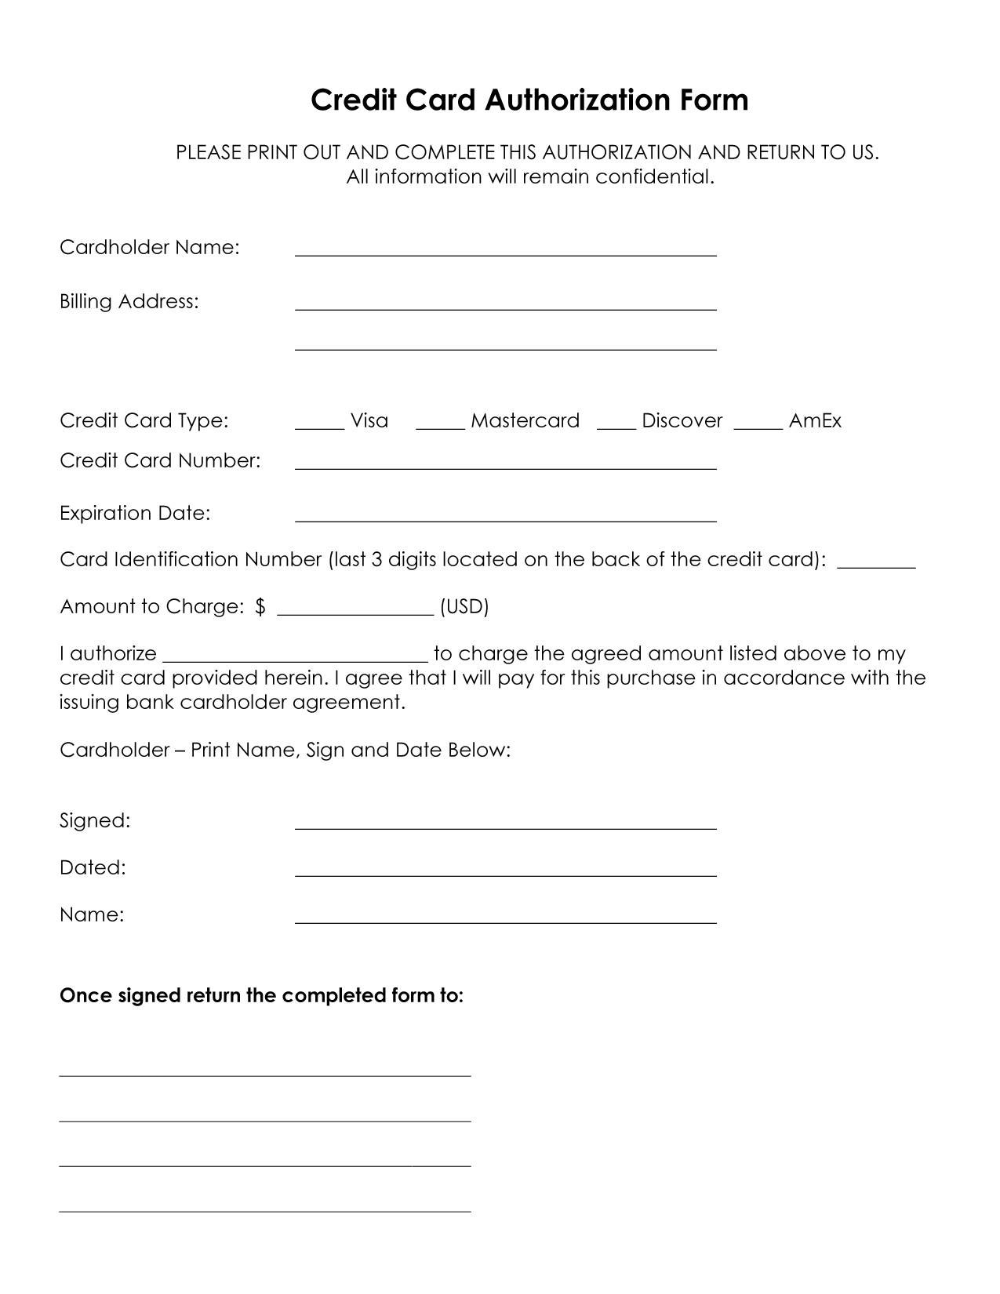 Credit Card Authorization Form Template Download Pdf Word Throughout Credit Card Payment Slip Templa Credit Card Images Credit Card Pictures Credit Card Design